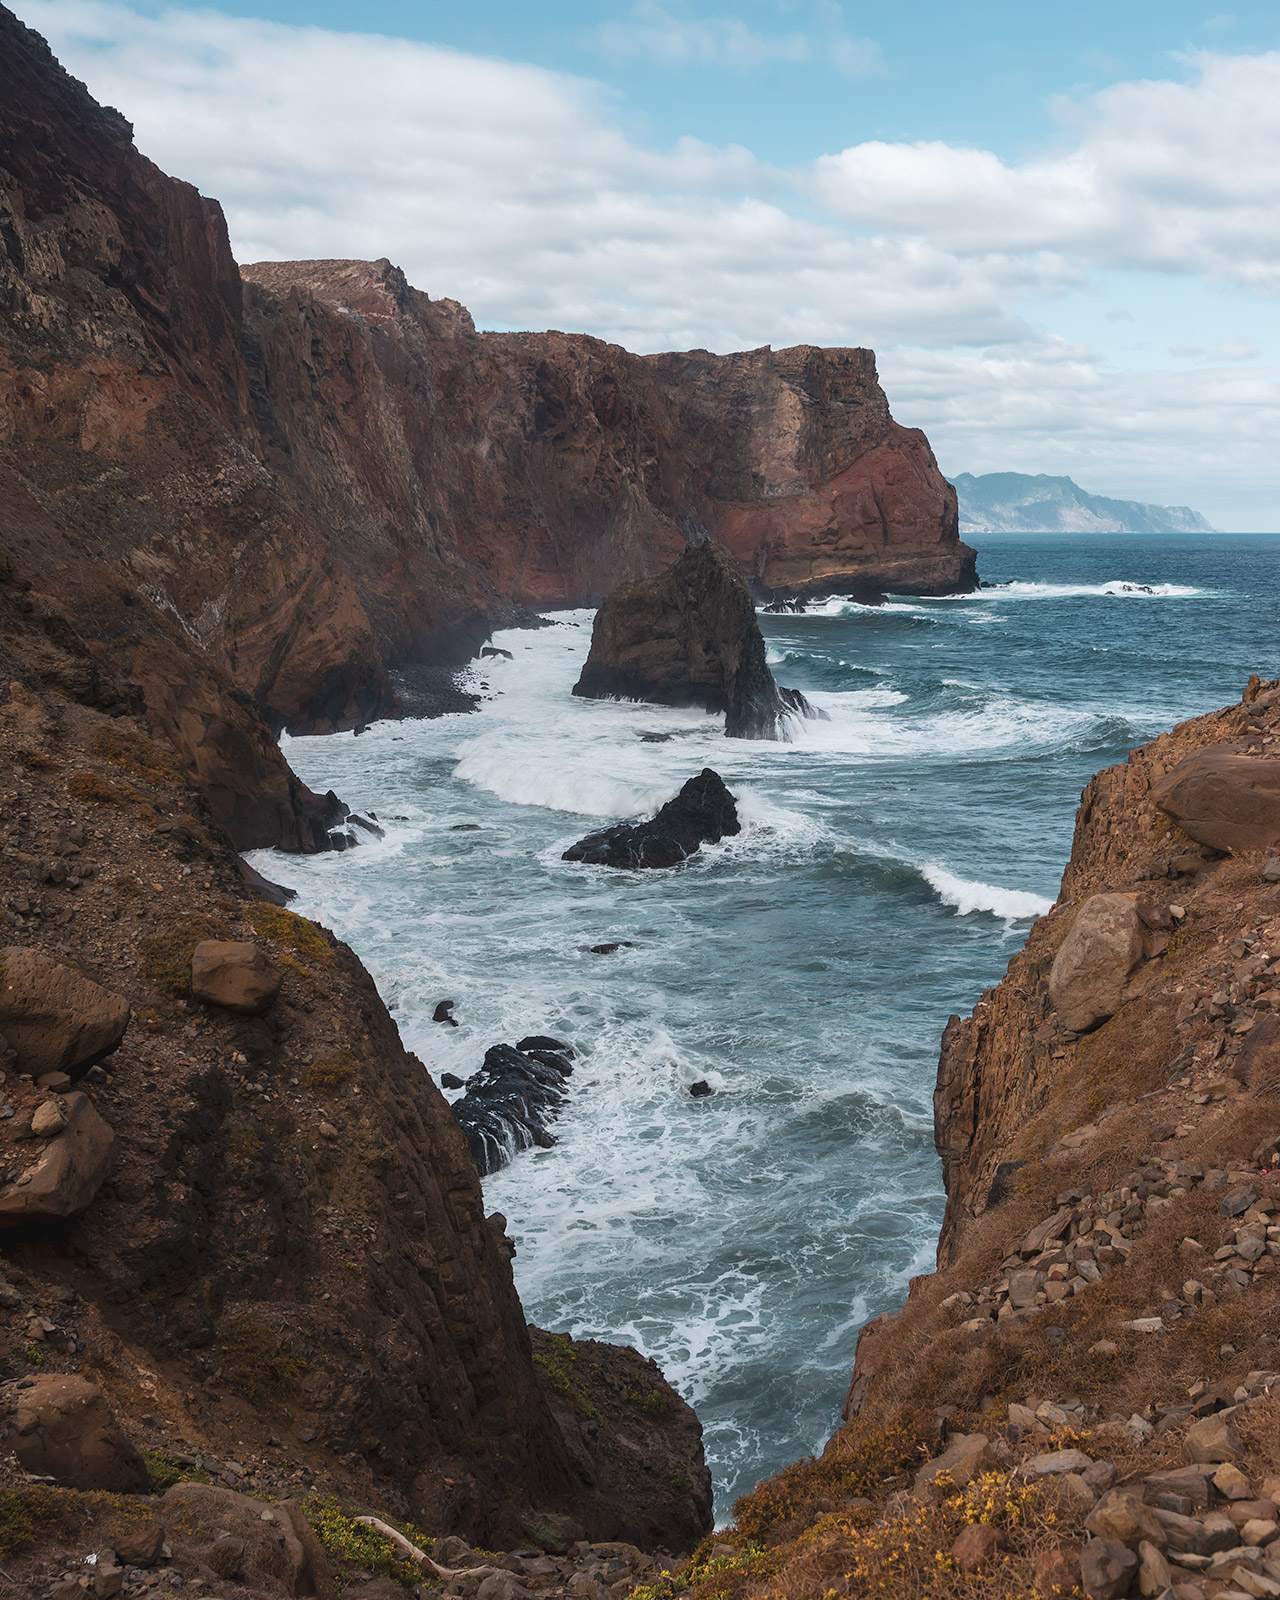 Ponta de São Lourenço is all about rugged landscapes, stunning sceneries, and interesting rock formations.